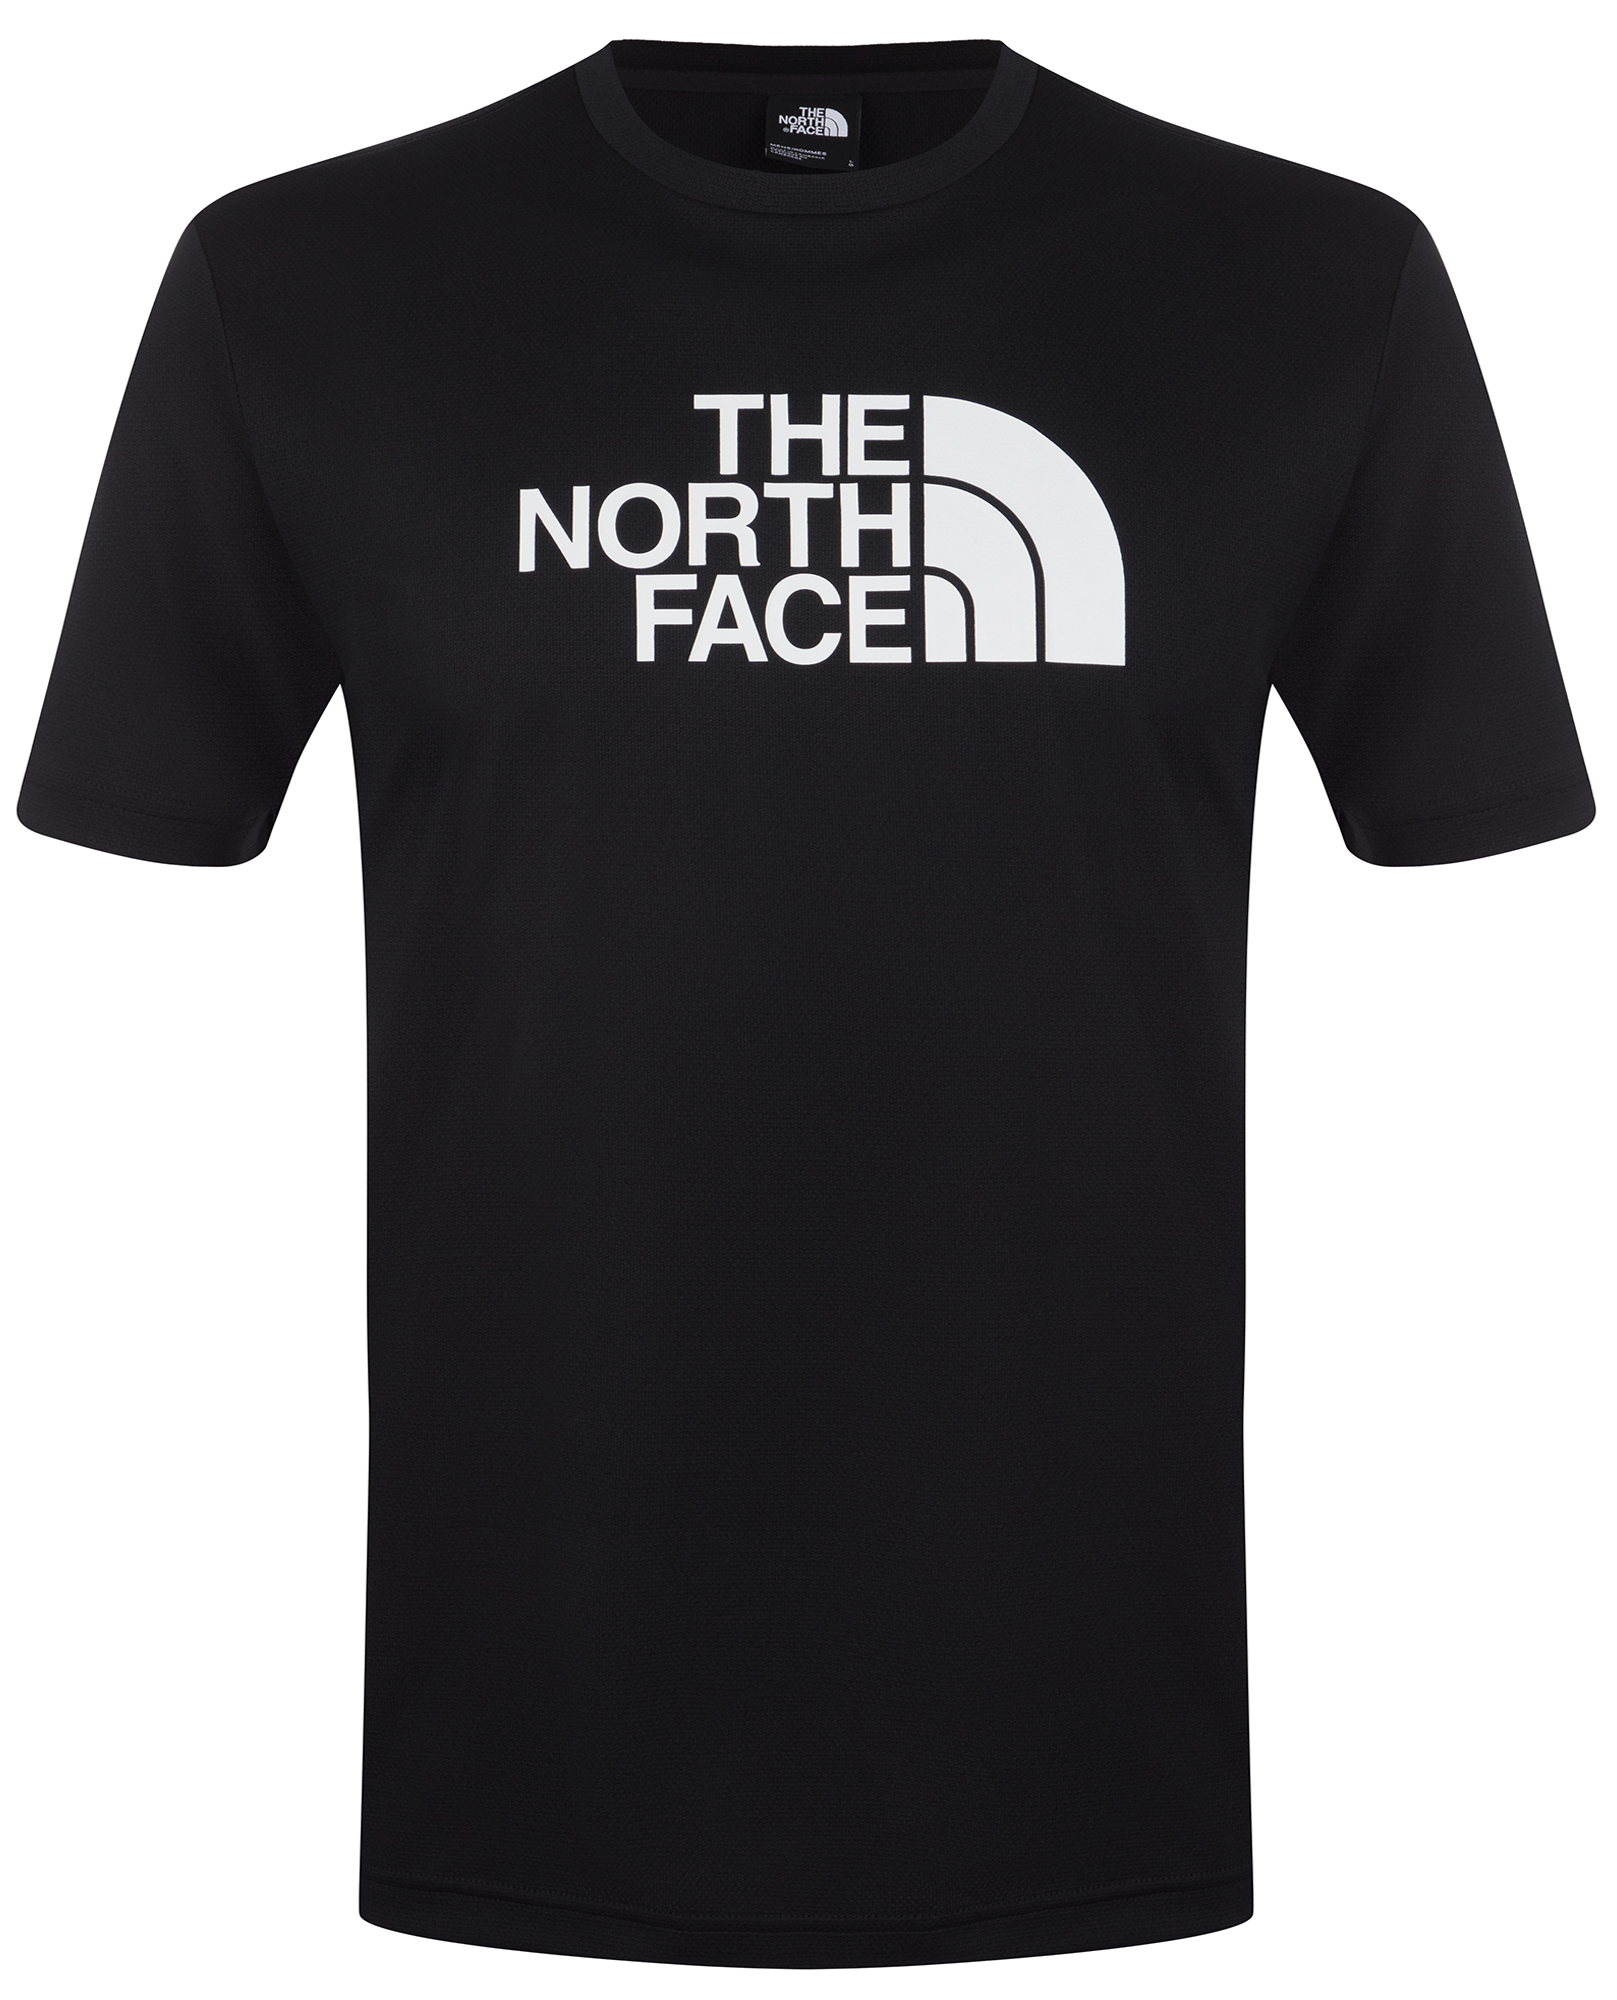 The North Face Футболка мужская The North Face Tanken, размер 44-46 the north face брюки мужские the north face tanken размер 44